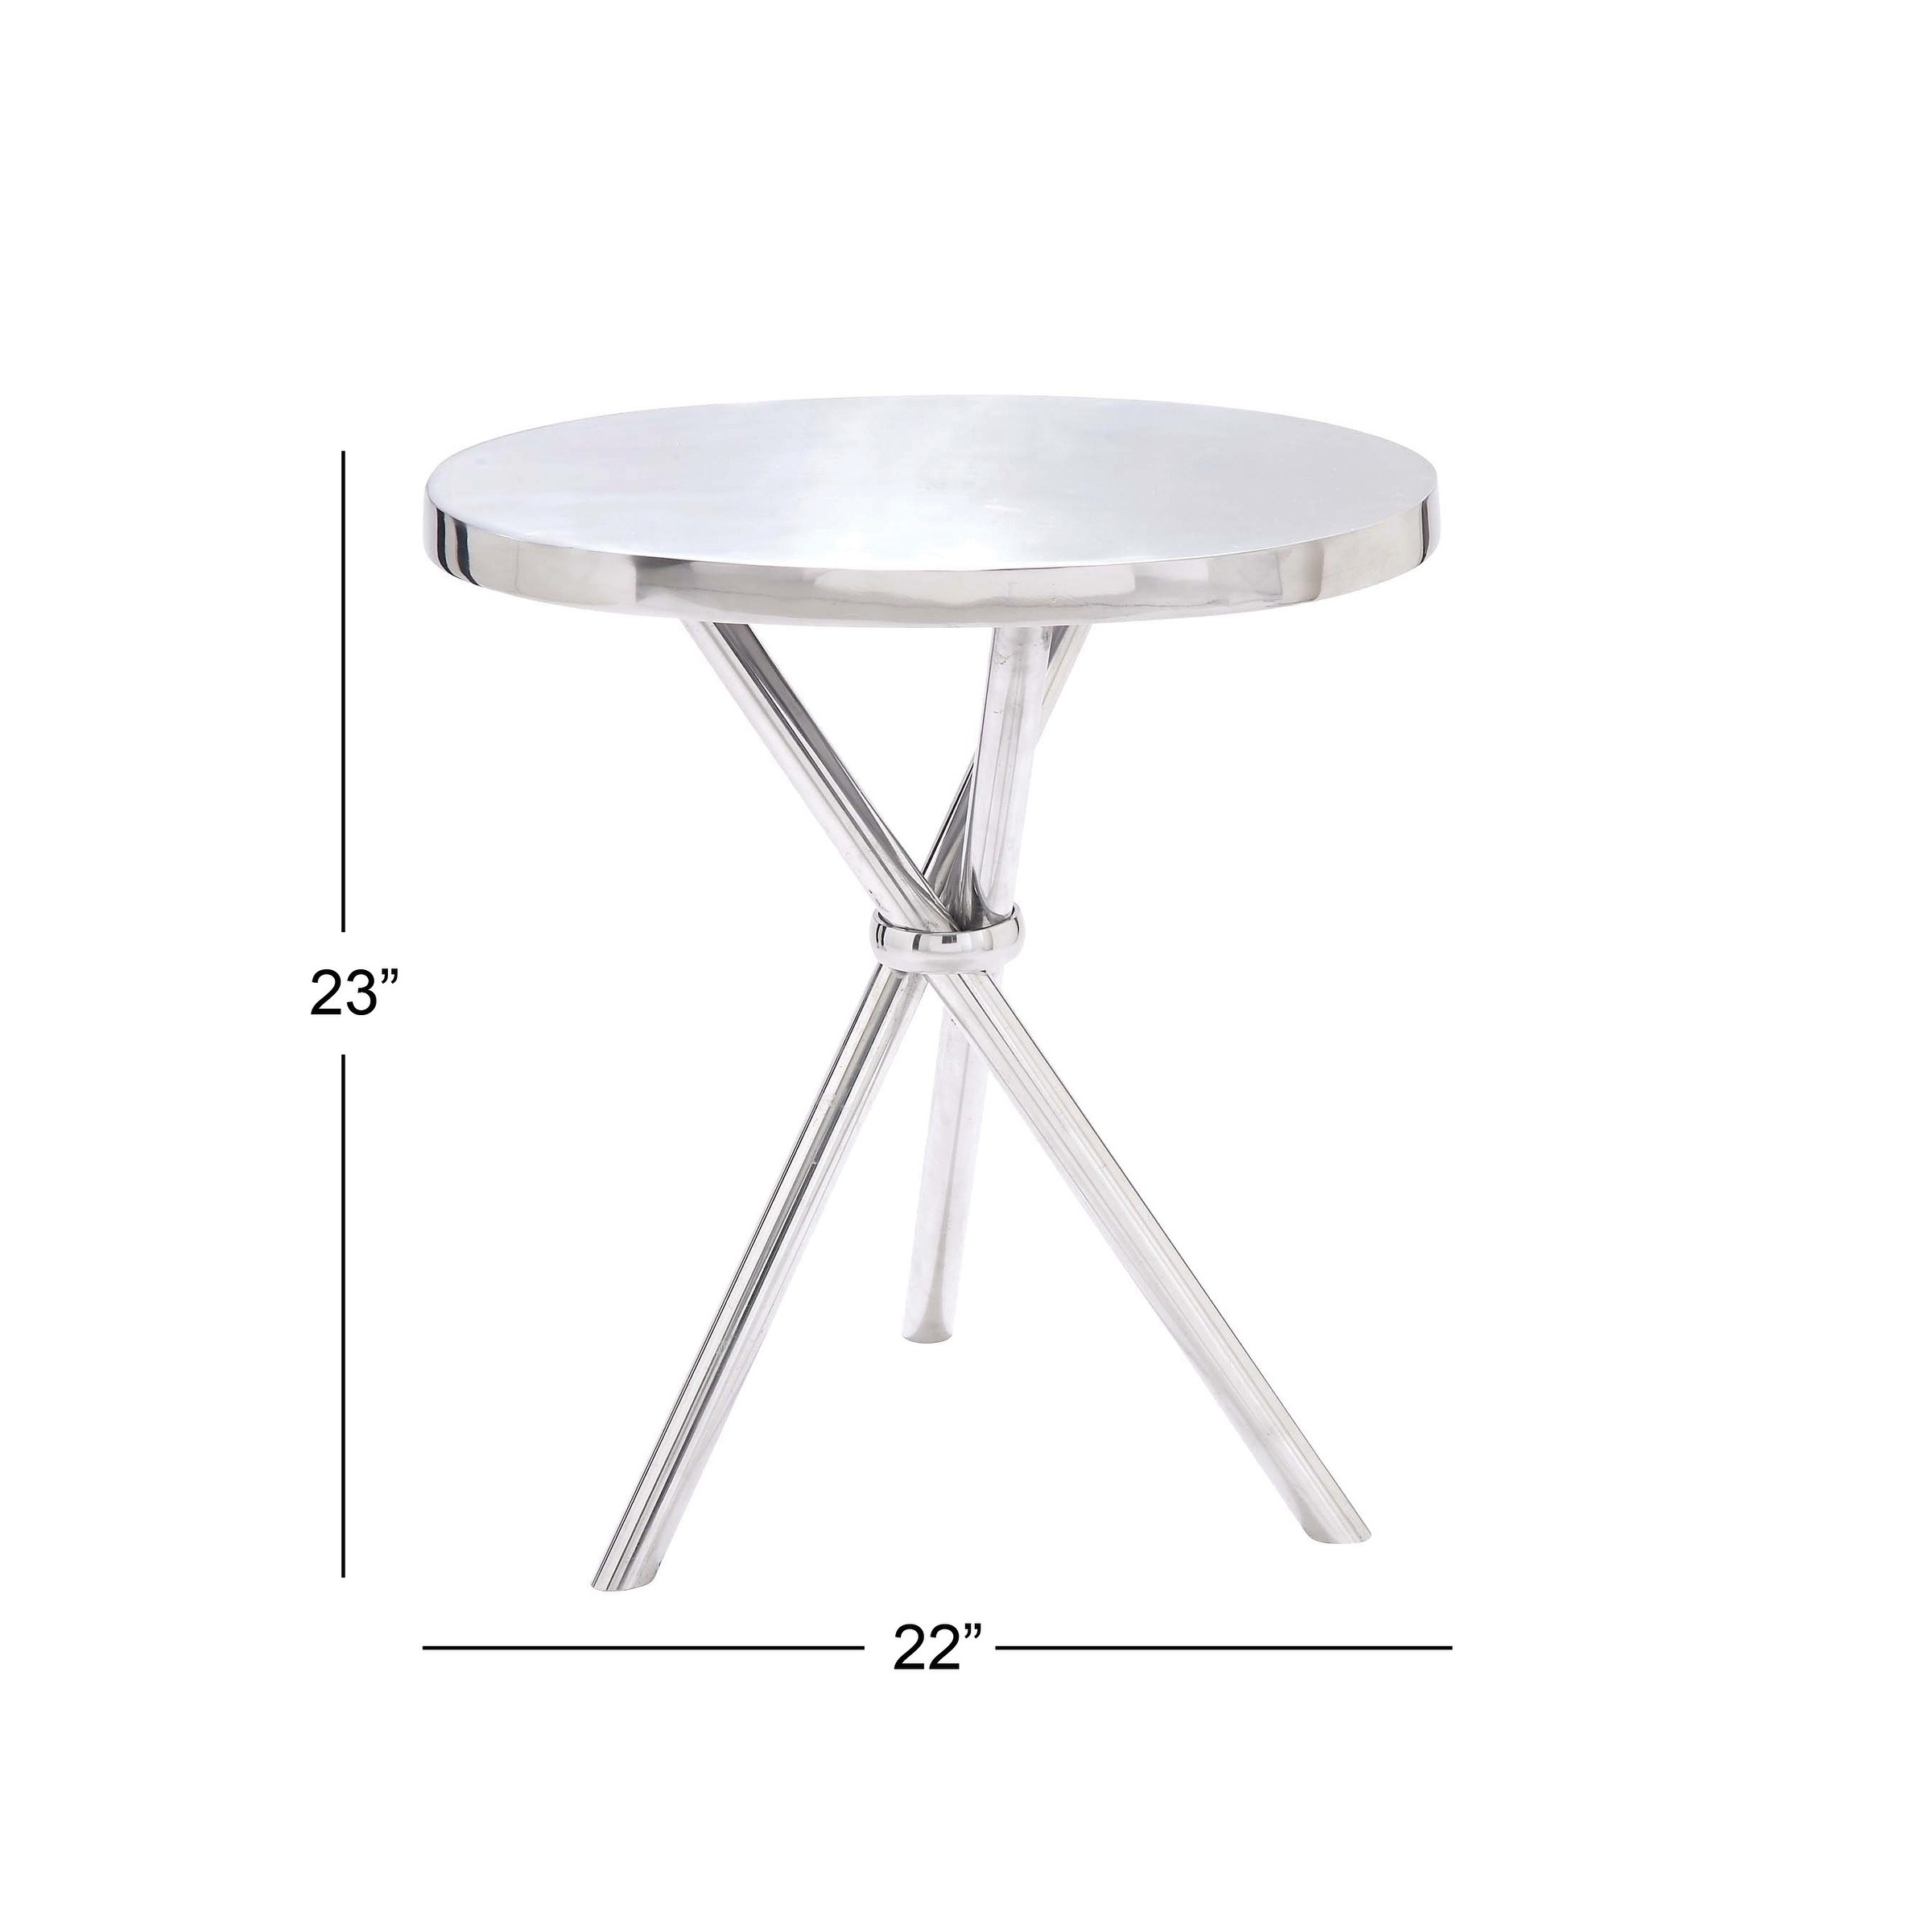 contemporary inch round silver aluminum accent table studio free shipping today high end lamps for living room small pedestal side west elm box frame dining covers bedside tables